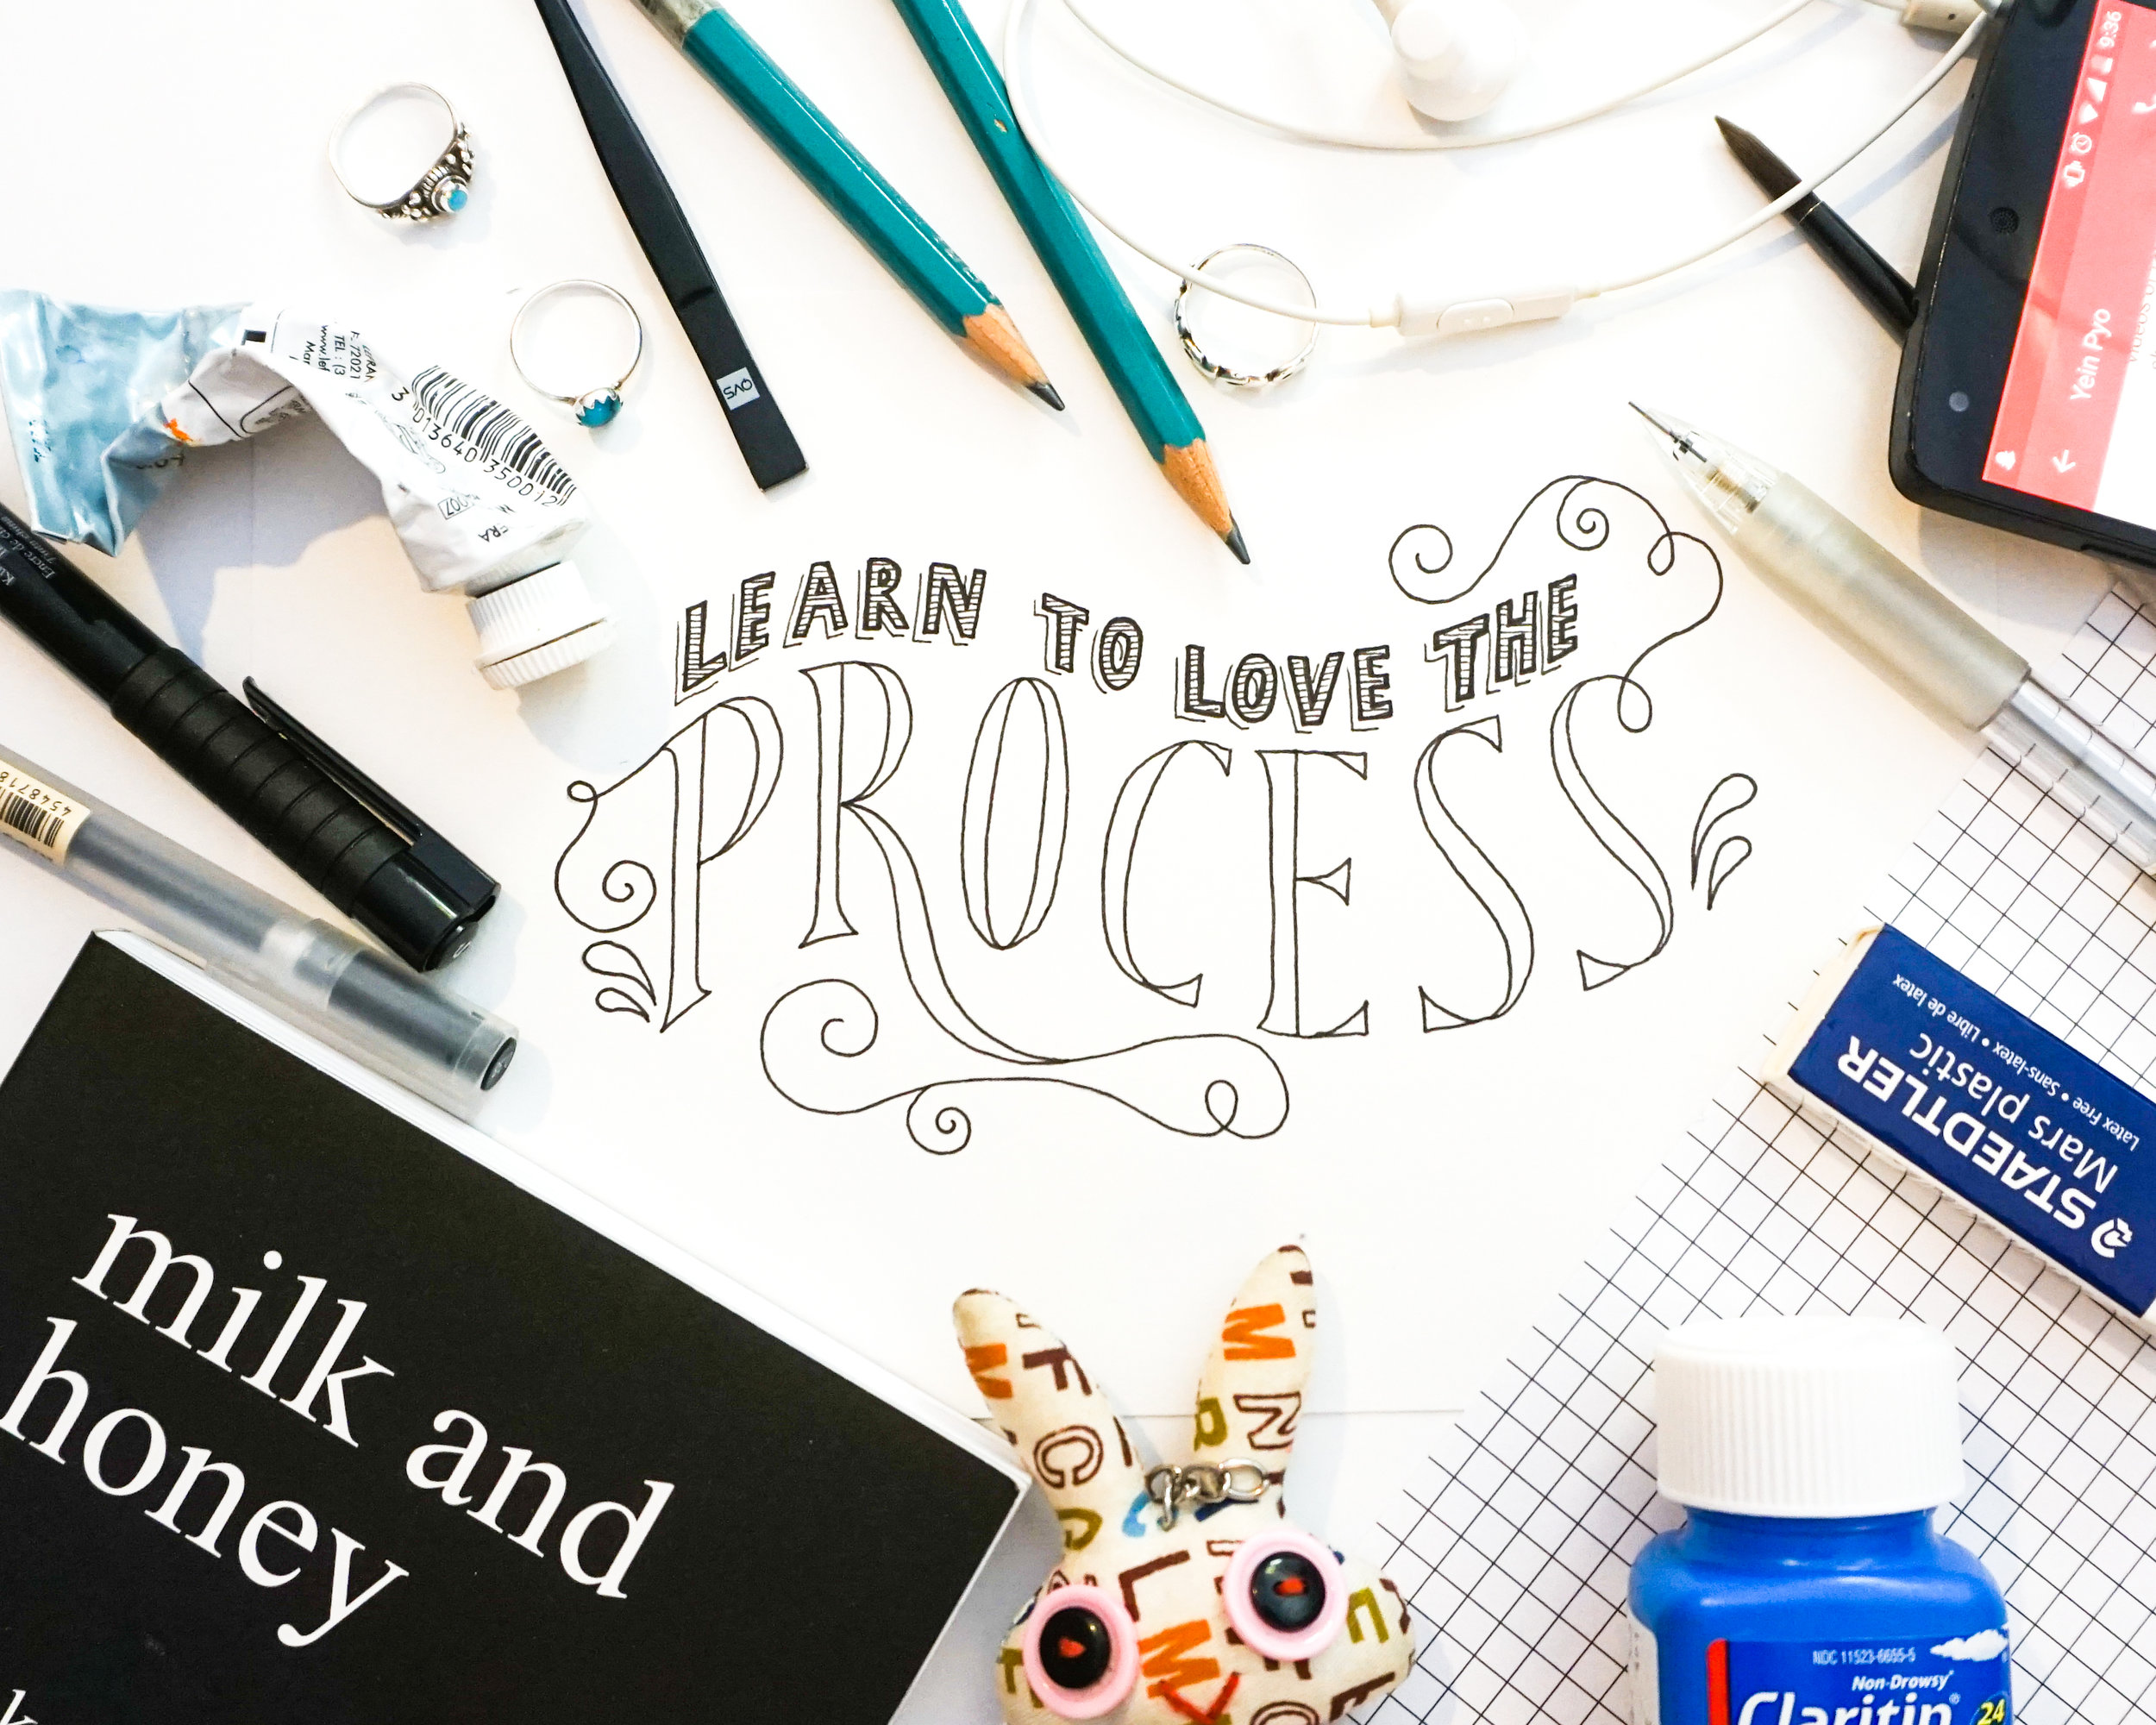 Image: Photograph of my hand lettering surrounded by various objects from my creative process.